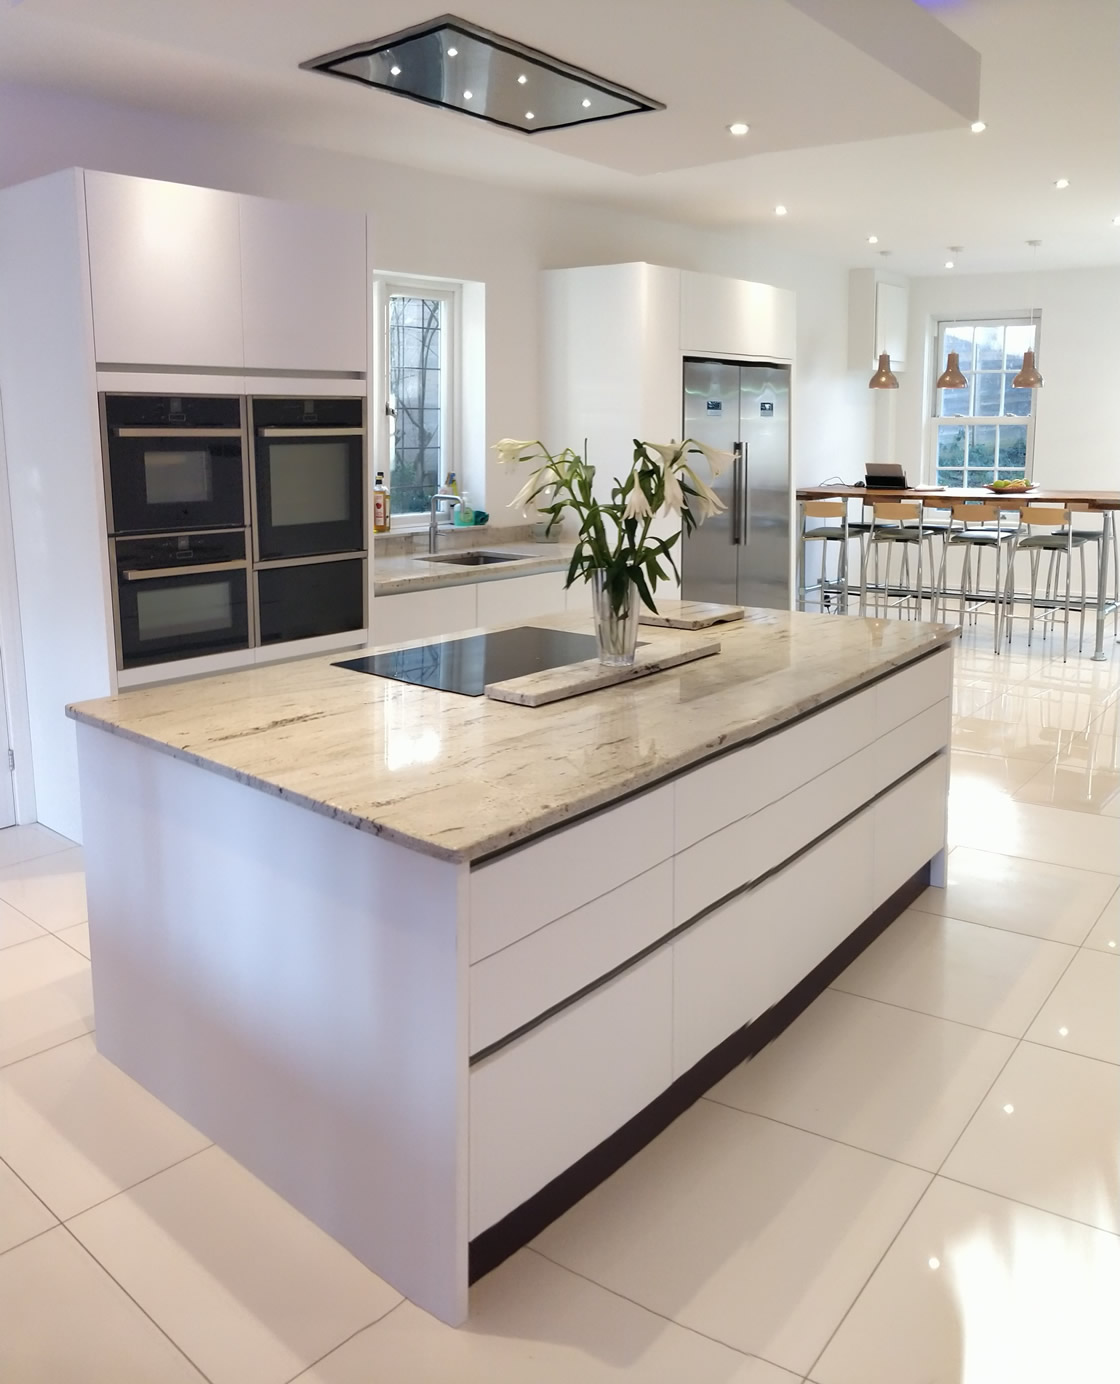 Large Bletchingley Bespoke Kitchen Design and Build